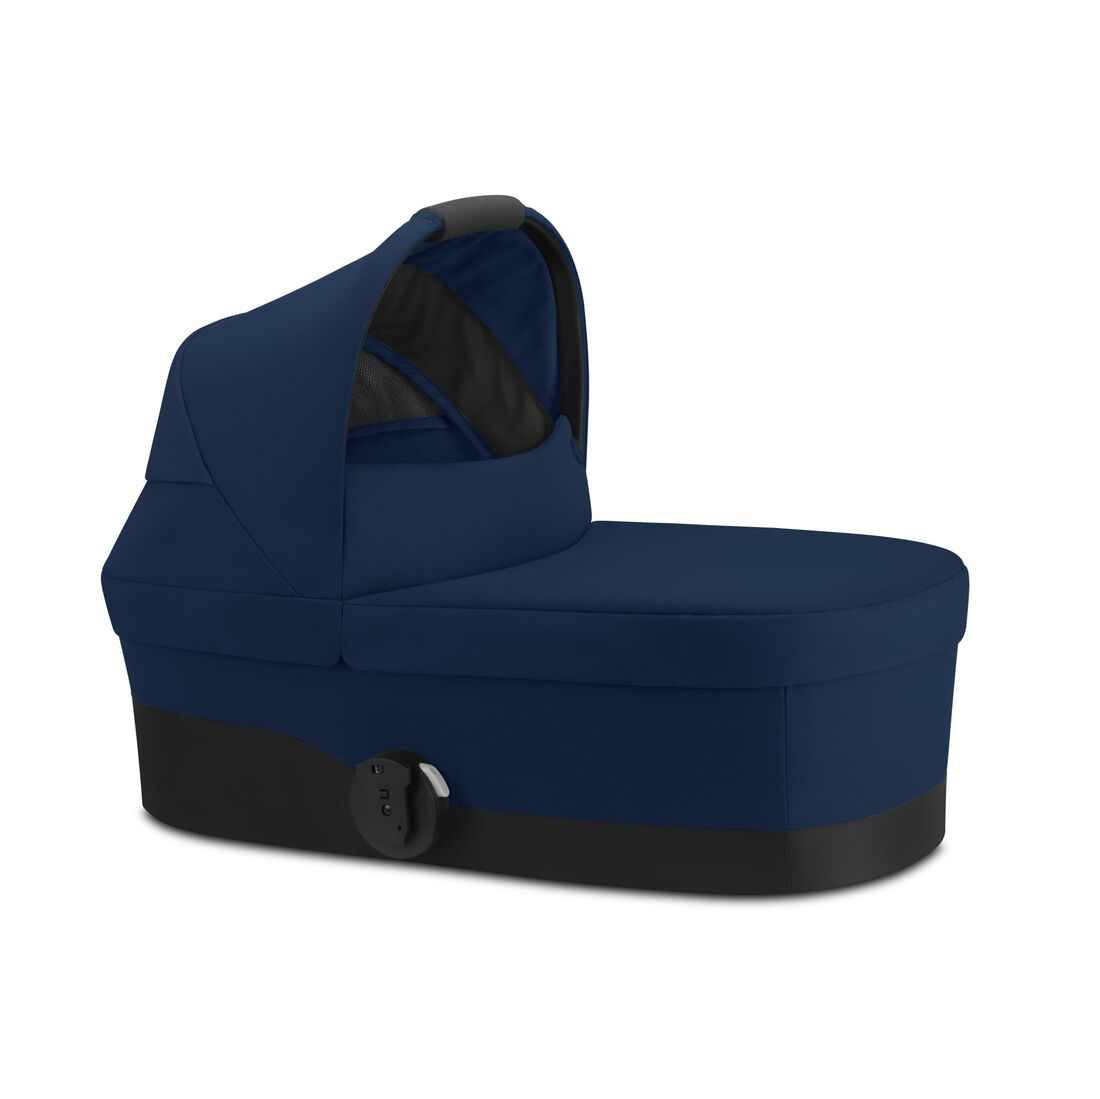 CYBEX Cot S - Navy Blue in Navy Blue large image number 1